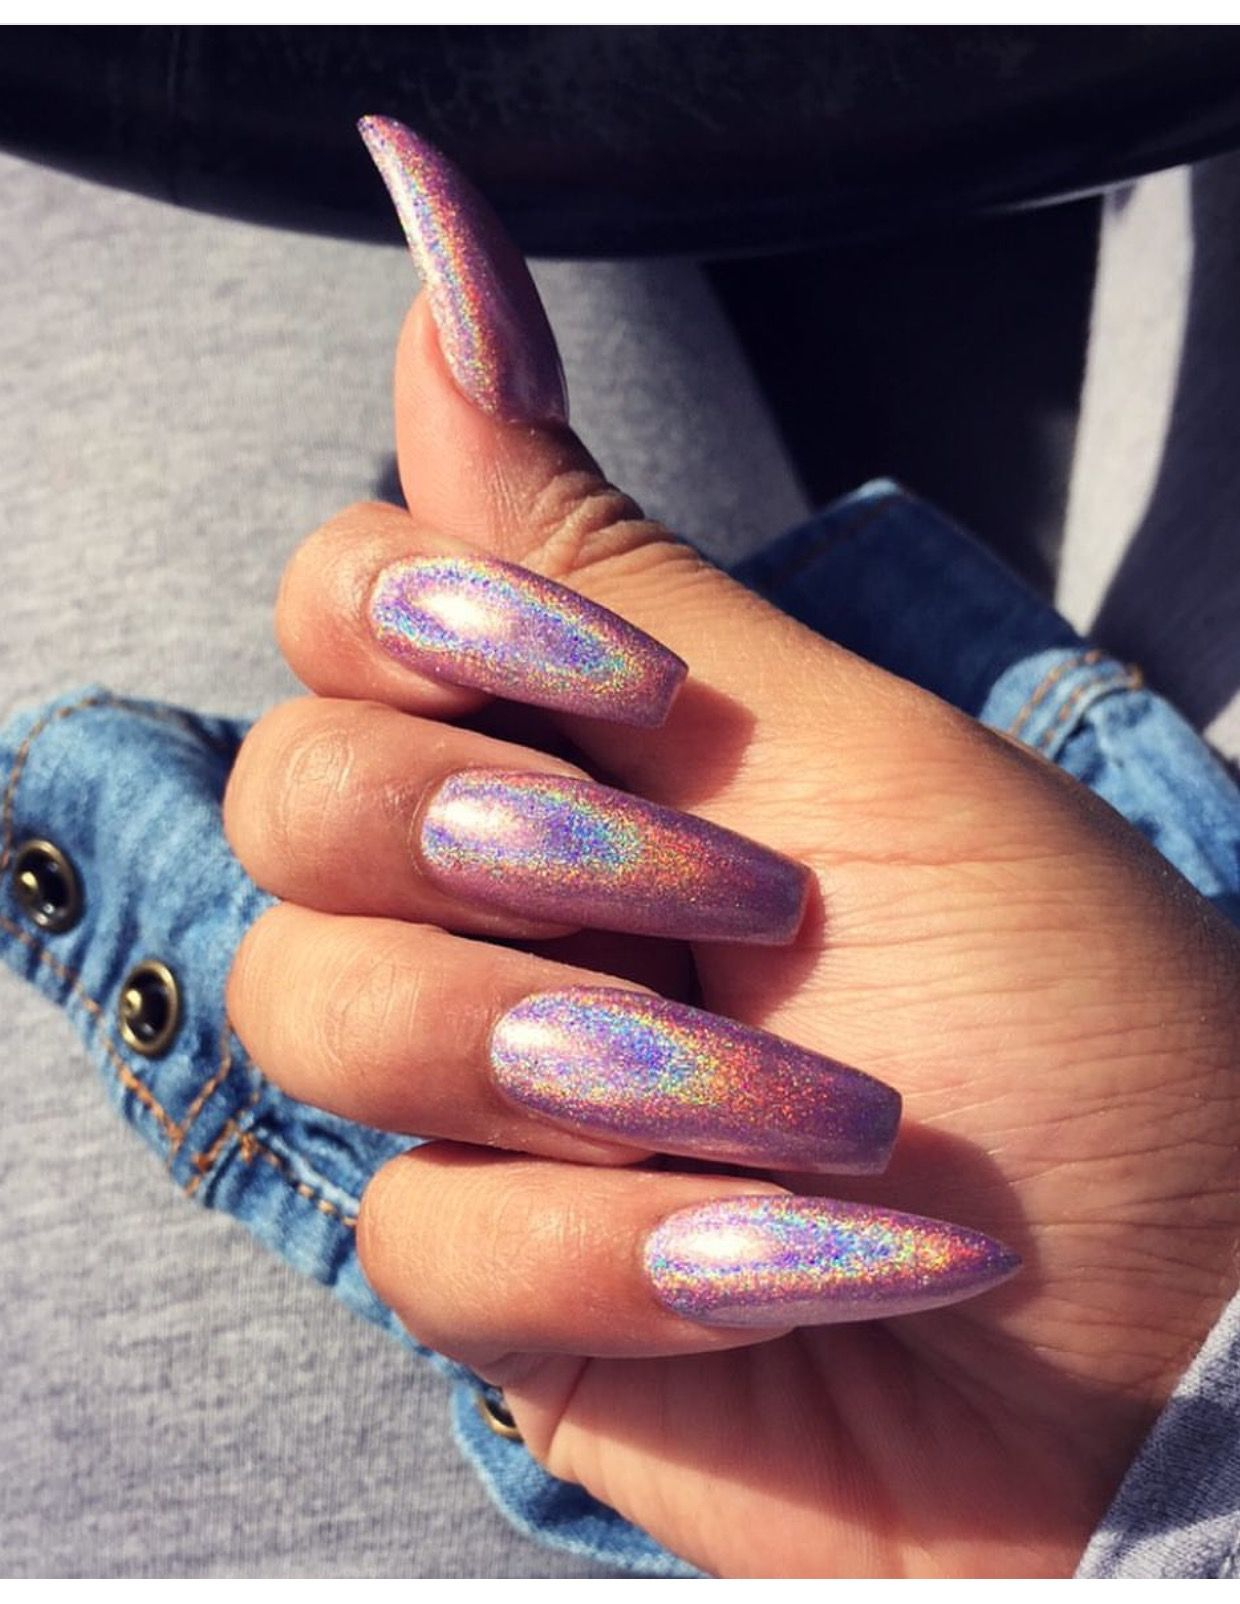 Pinterest Globalairy 3 Instagram Global Airy 3 Pretty Nails Classy Nails Cute Nail Designs